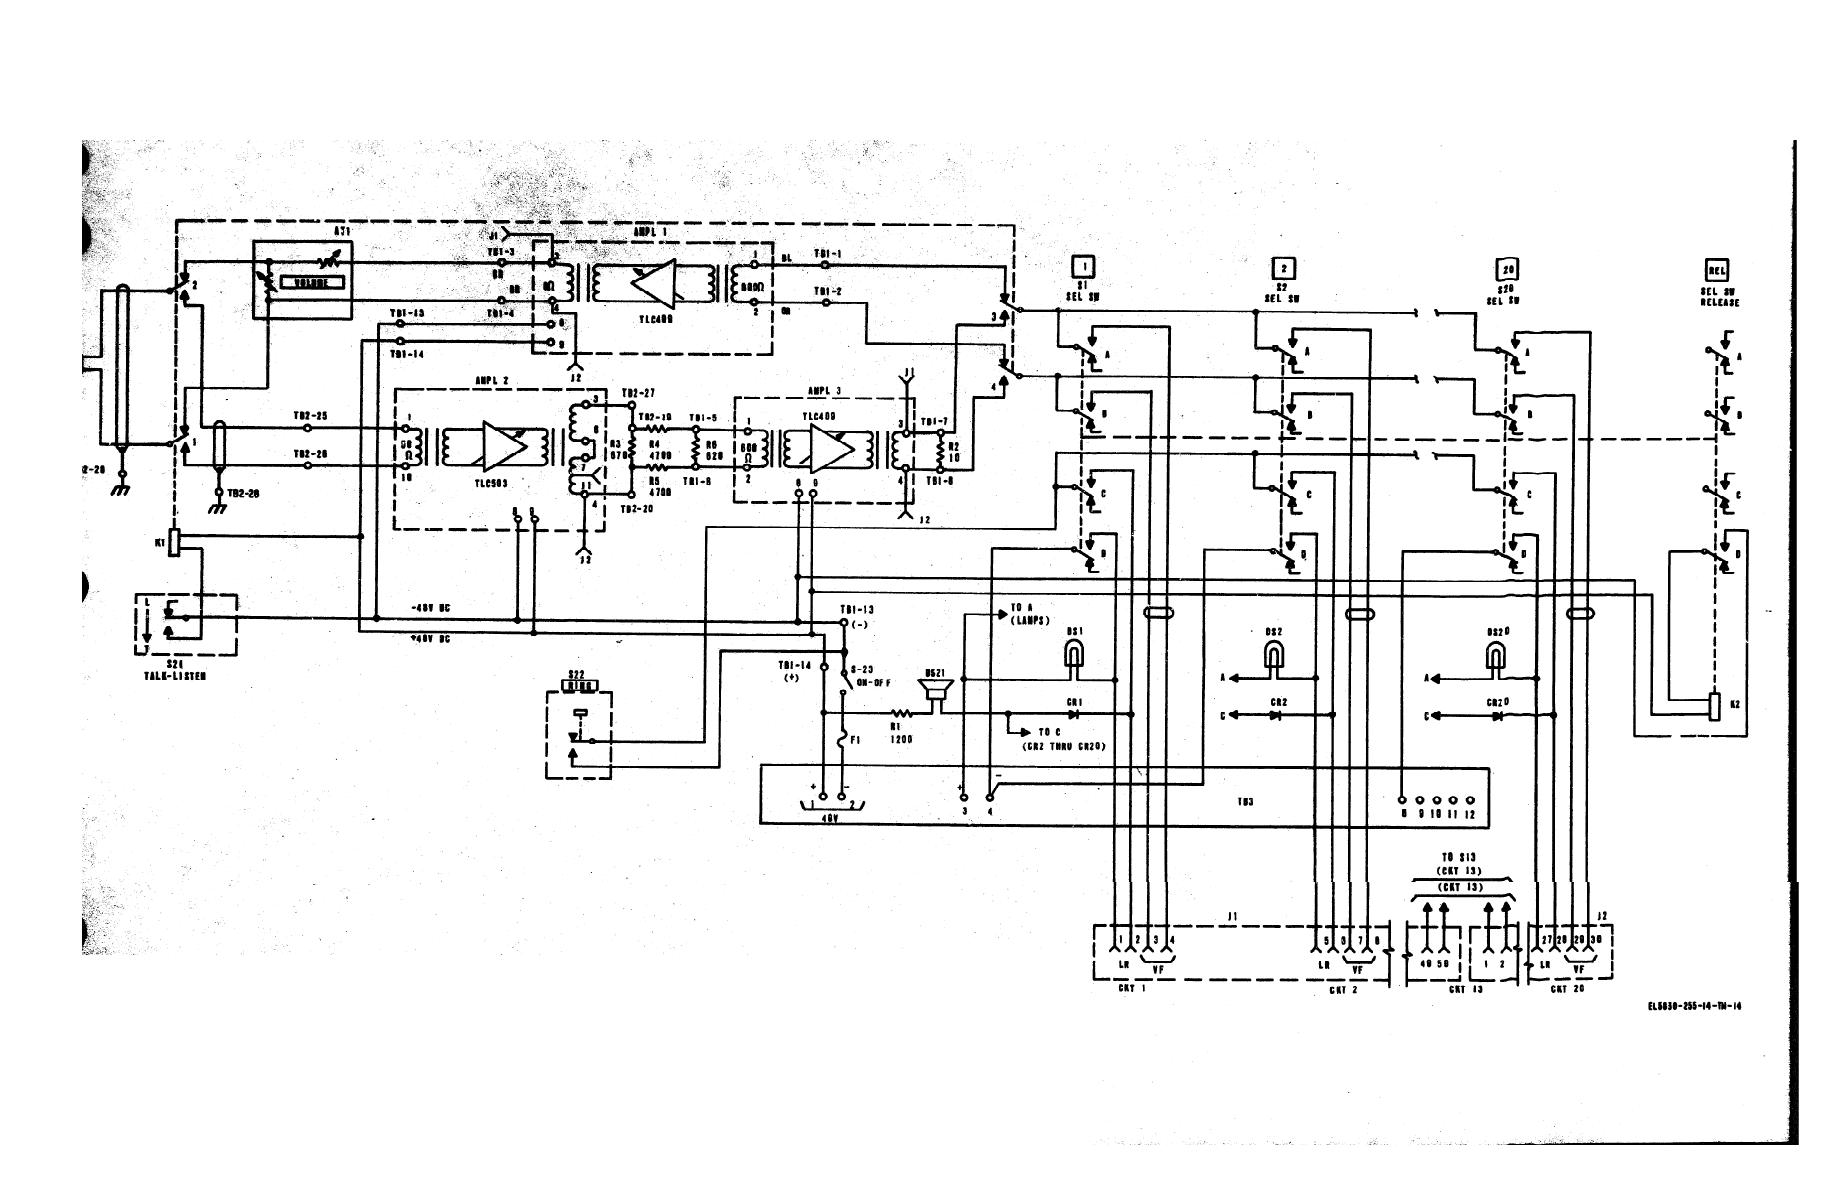 Nutone Intercom Speaker Wiring Diagram Doorbell Systems Attractive Illustration Pacific System Modern